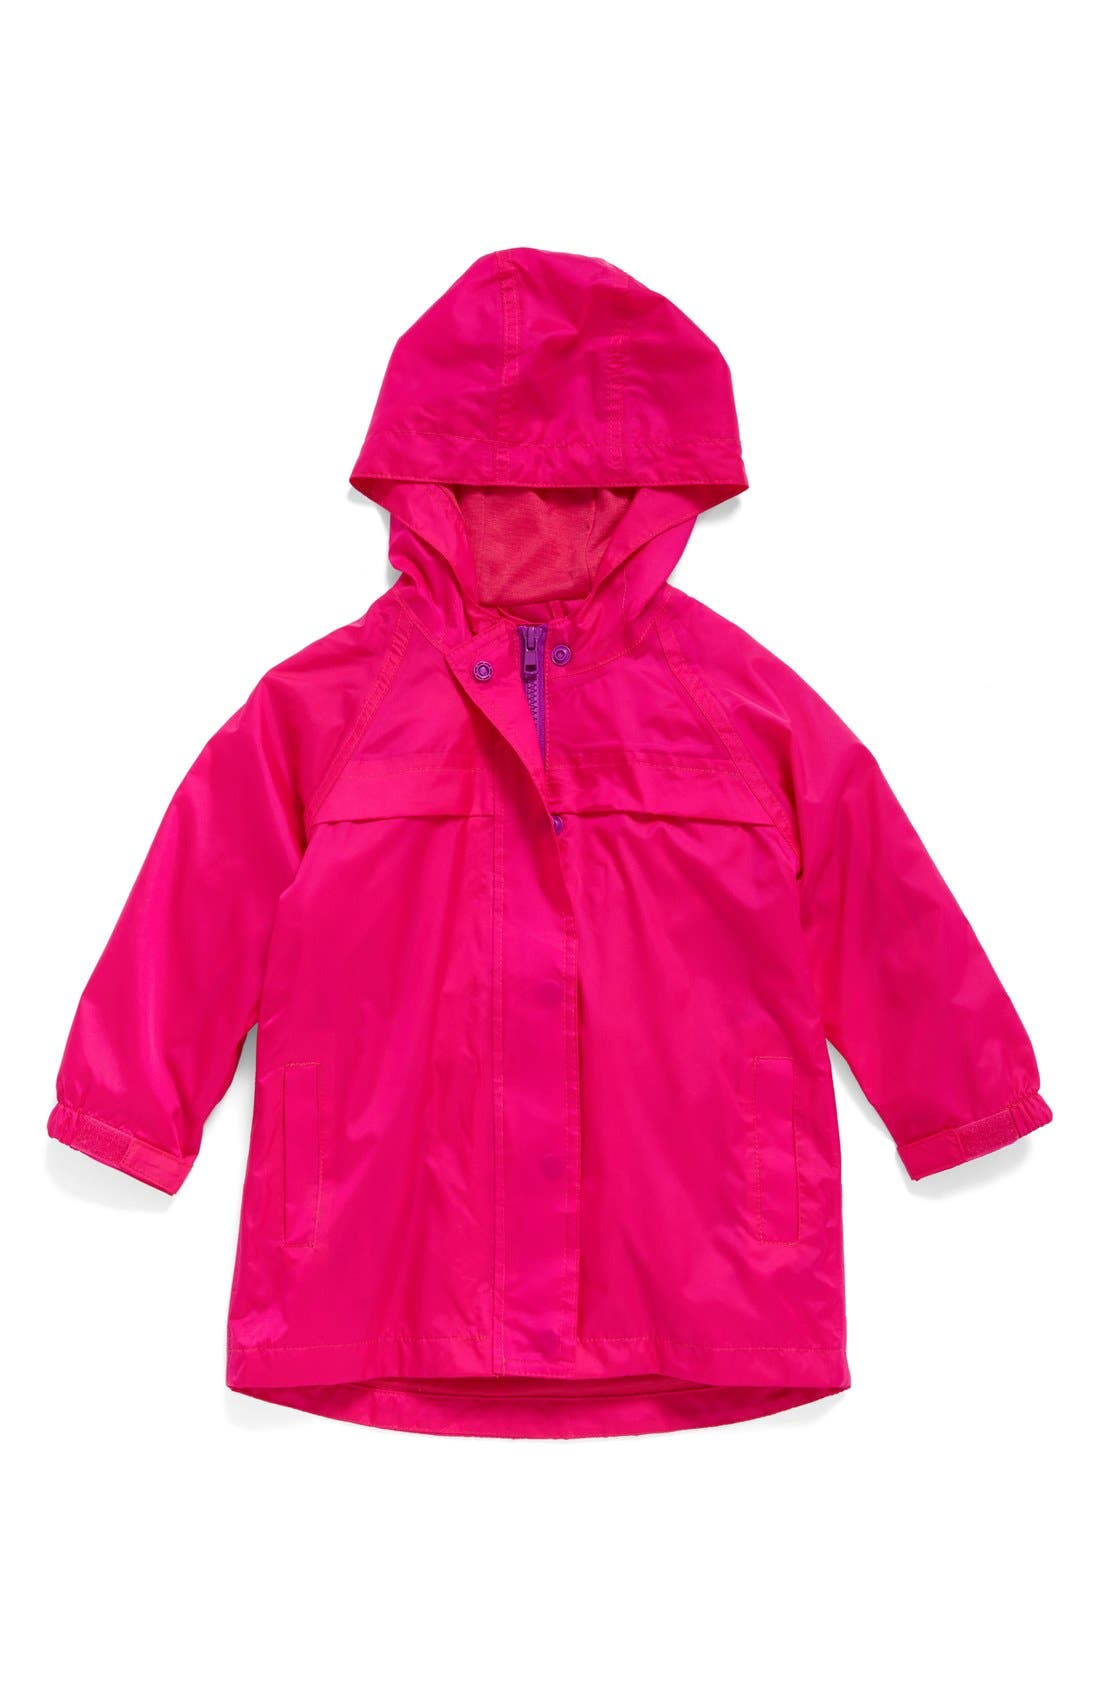 Western Chief Hooded Raincoat (Toddler Girls & Little Girls)